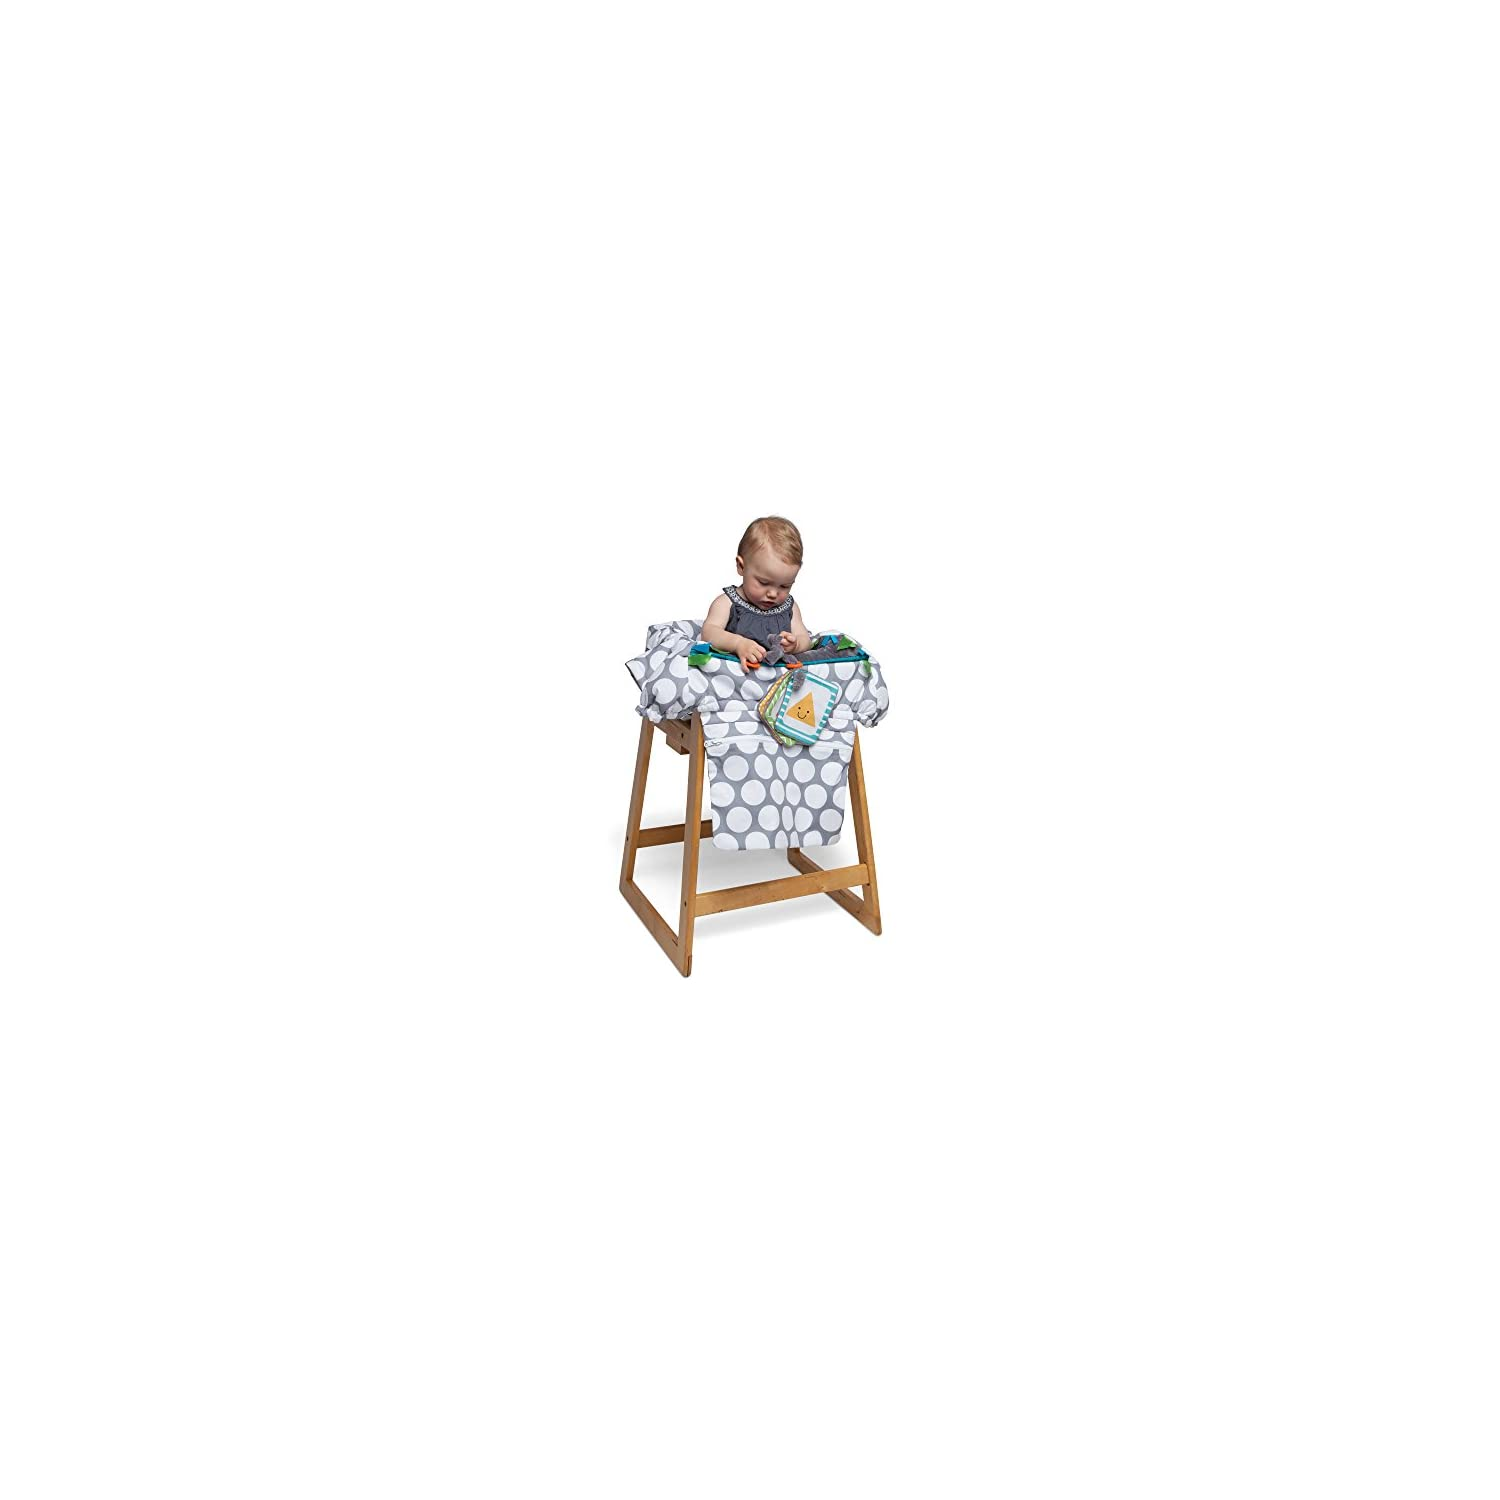 Boppy Preferred Shopping Cart and Restaurant High Chair Cover, Gray Jumbo Dots